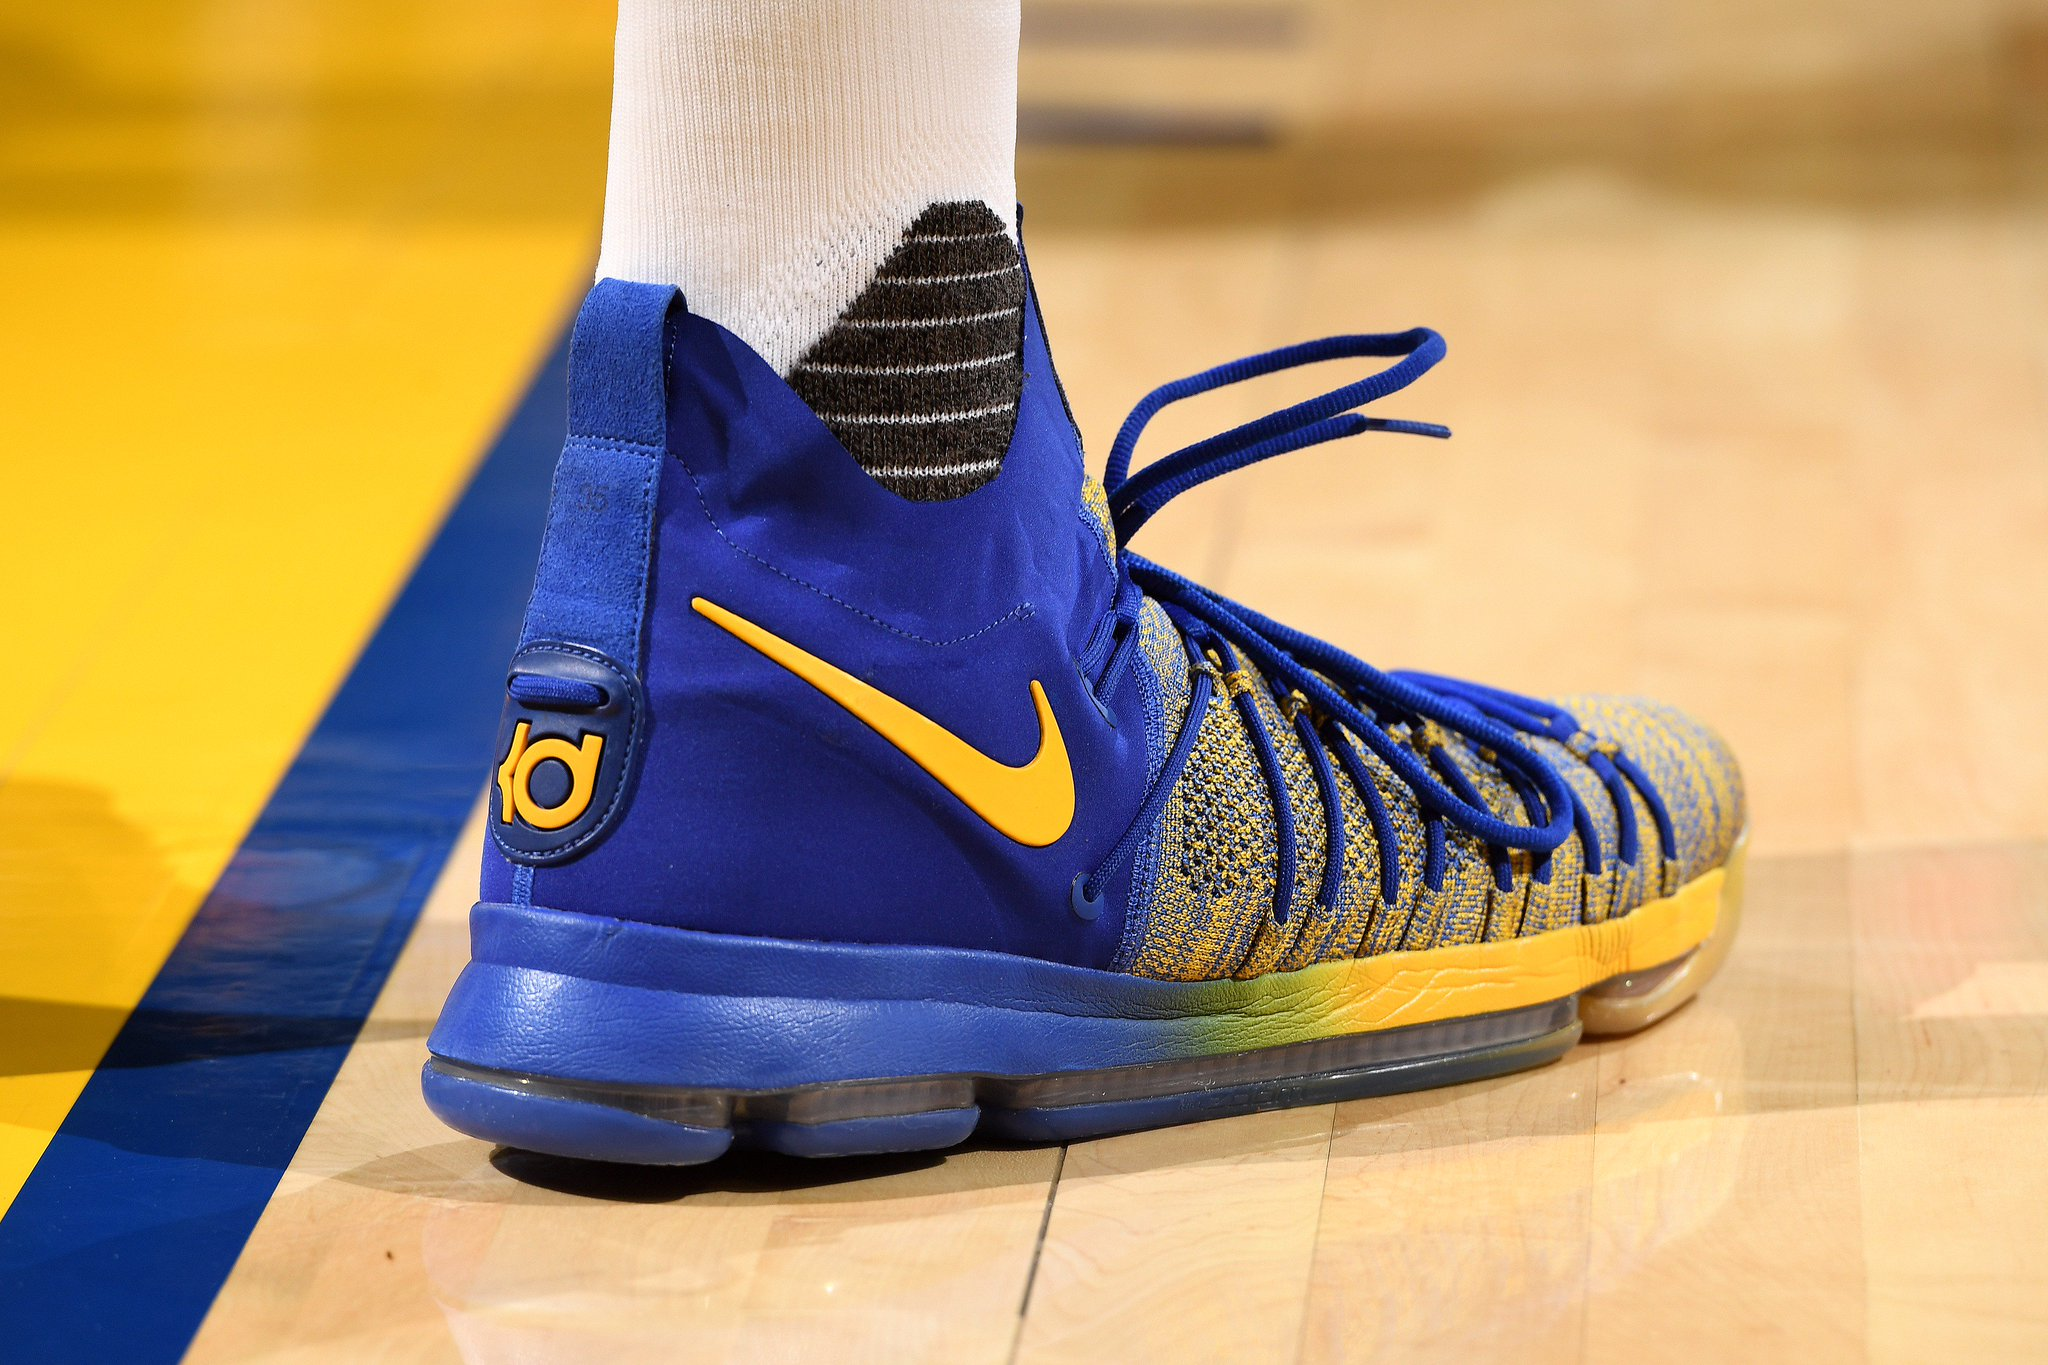 kevin durant shoes - HD2048×1365